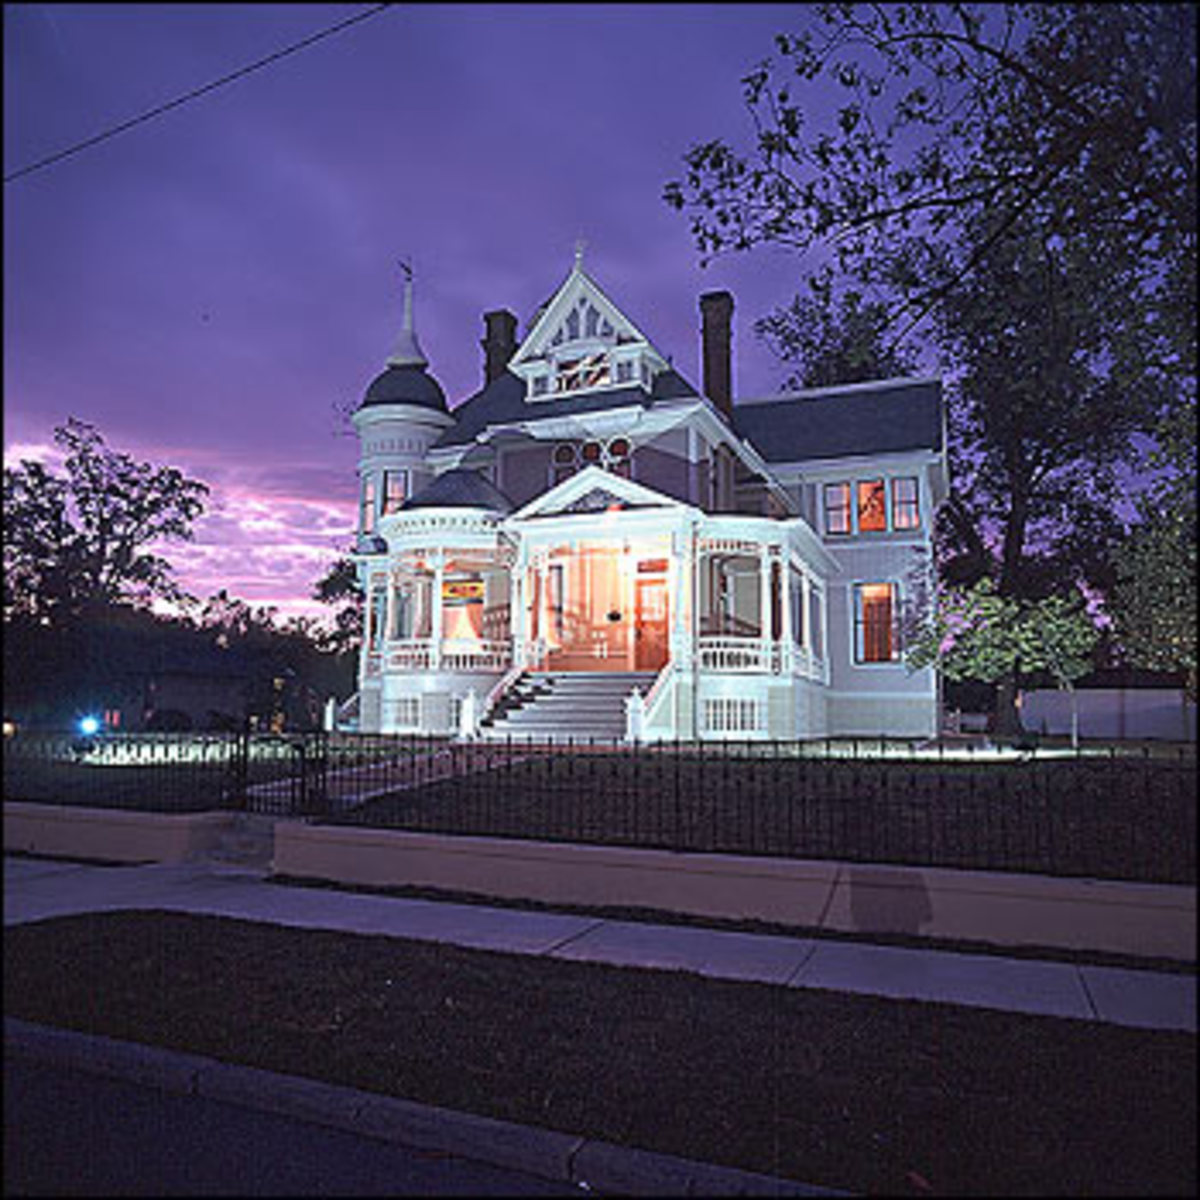 """THOMPSON-PILLOW"" HOUSE IN HELENA, ARKANSAS (QUEEN ANNE ARCHITECTURE)"